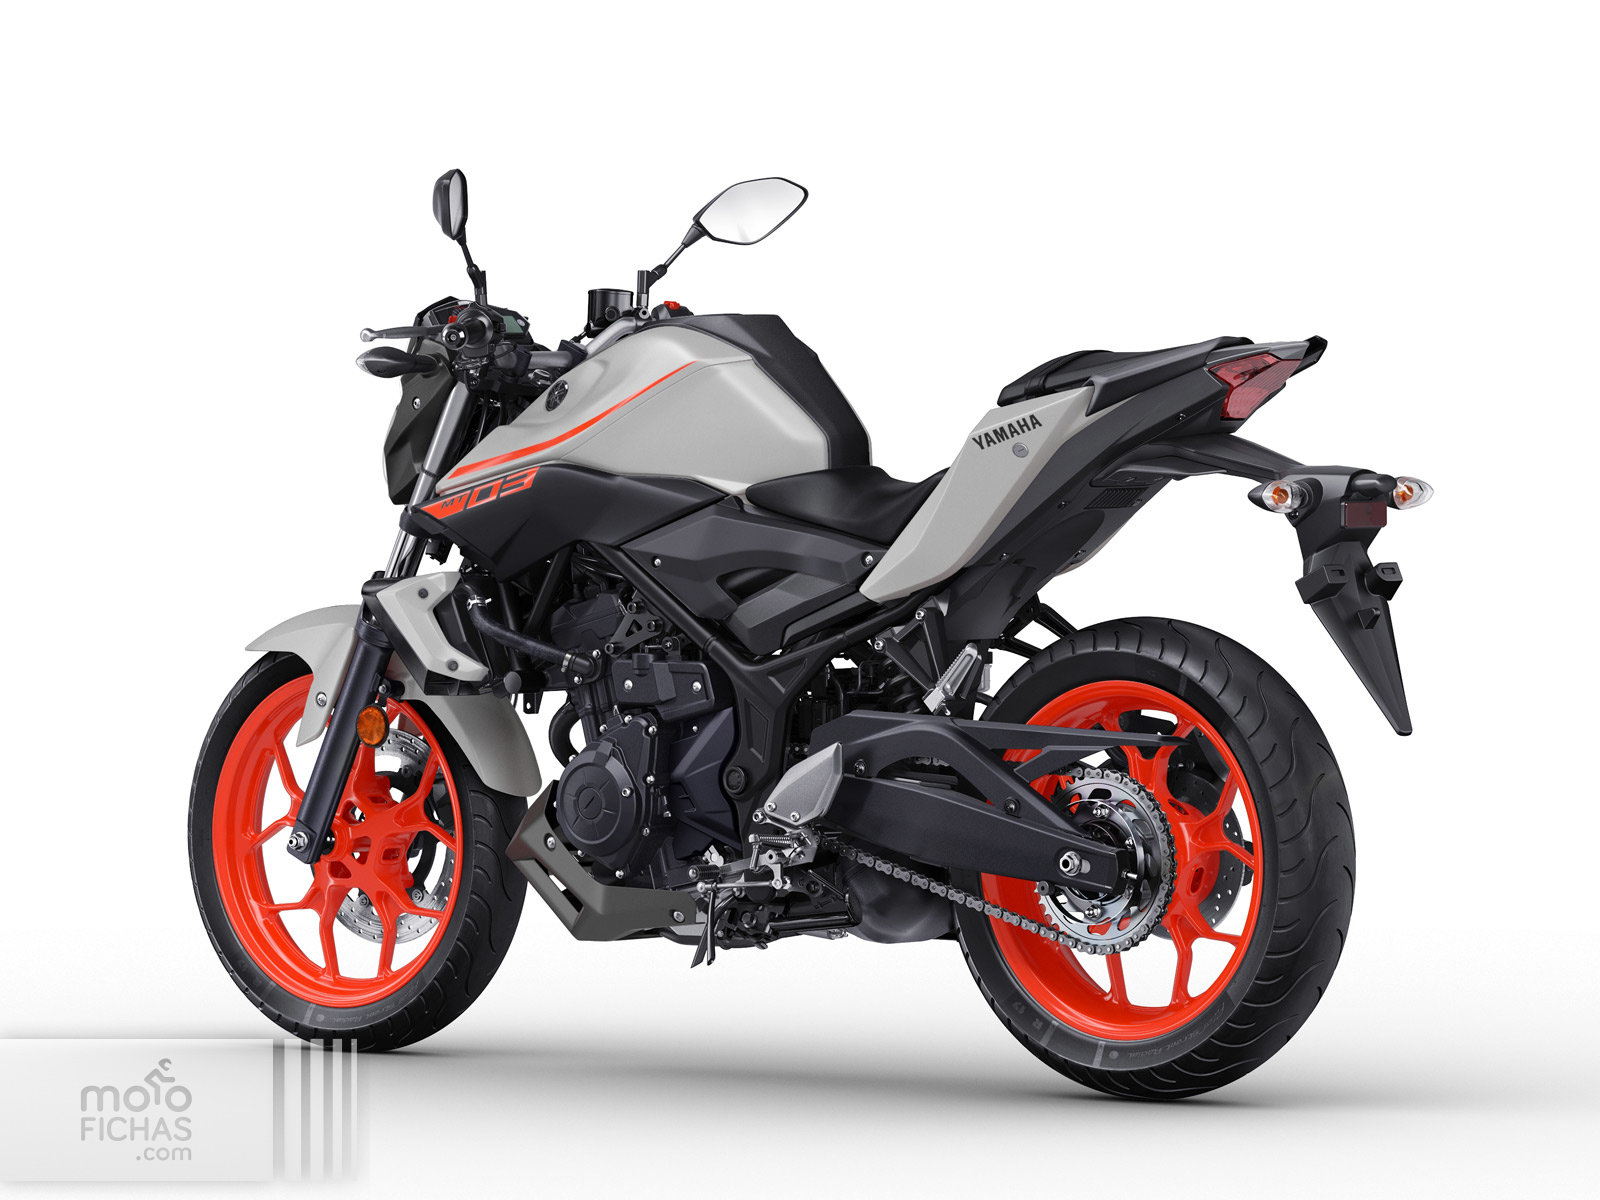 fotos yamaha mt 03 2018 2019 galer a y fondos escritorio. Black Bedroom Furniture Sets. Home Design Ideas